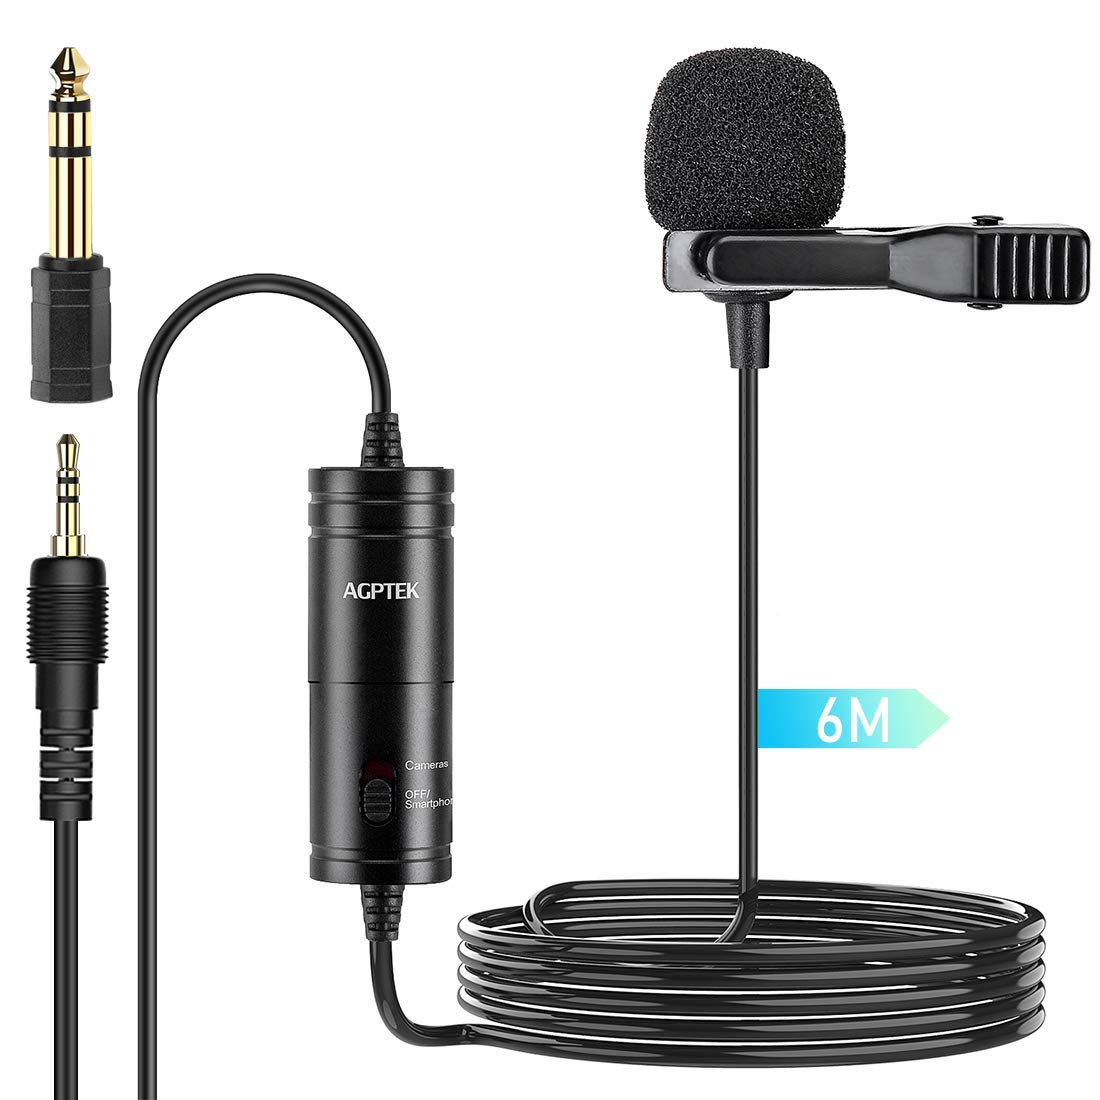 Lavalier Microphone, 236 in Clip on Lavalier Lapel Mic with Omnidirectional Condenser for Podcast, Recording,Camera, DSLR, iPhone, Android, PC, Interview by AGPTEK by AGPTEK